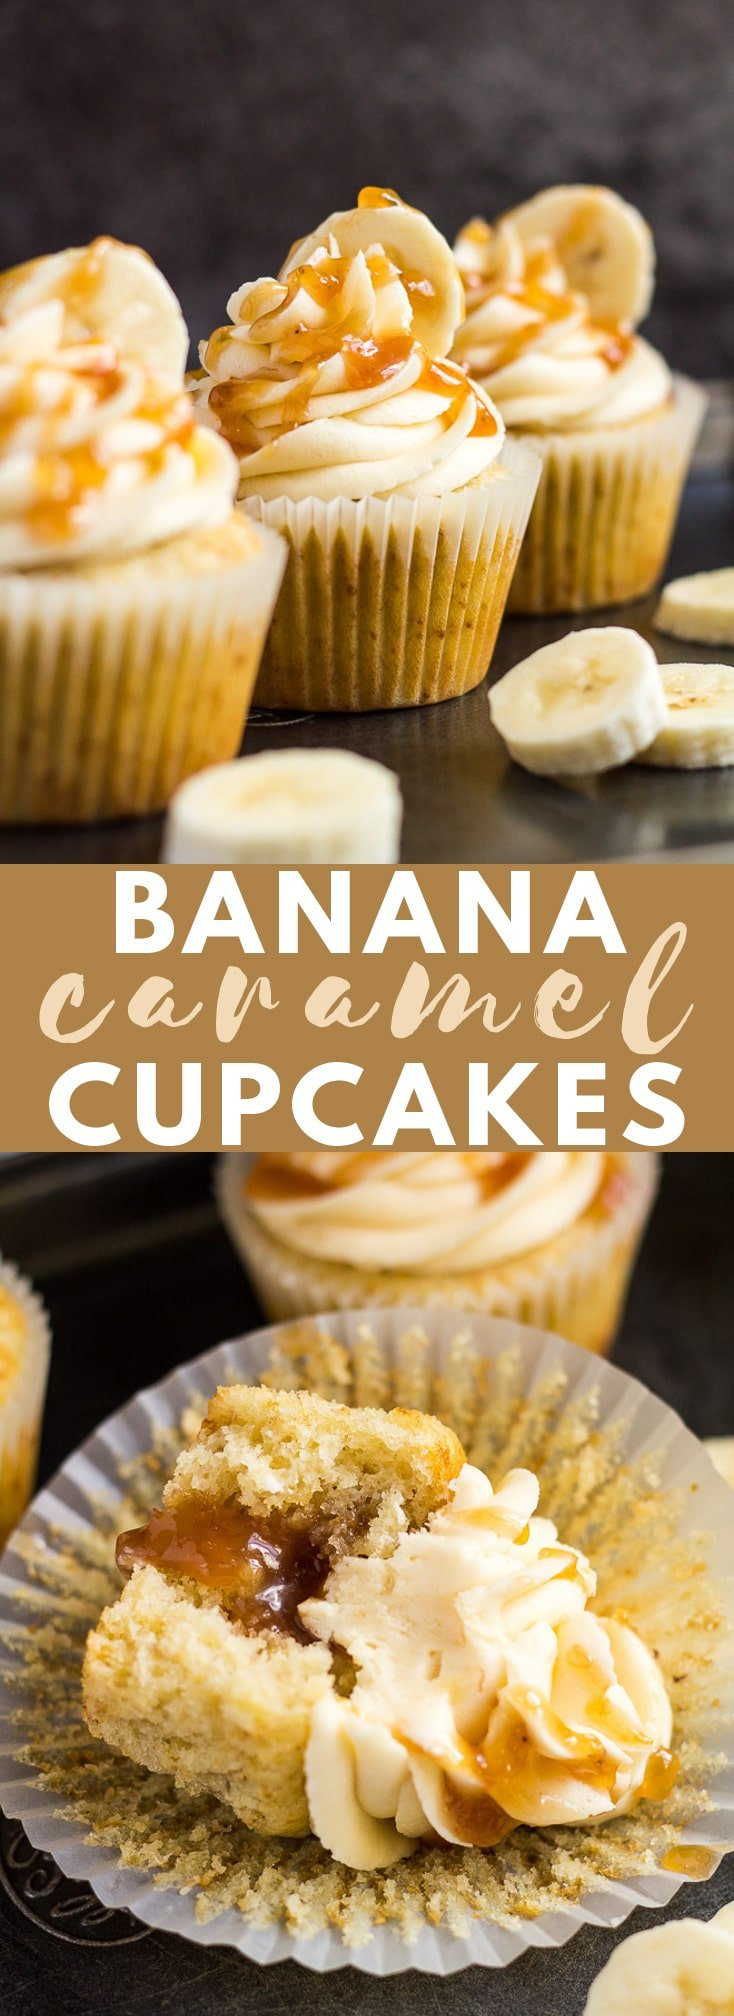 Banana Caramel Cupcakes - Deliciously moist and fluffy banana cupcakes, filled with homemade banana caramel, and topped with a sweet banana caramel frosting! #banana #caramel #cupcakes #cupcakerecipes